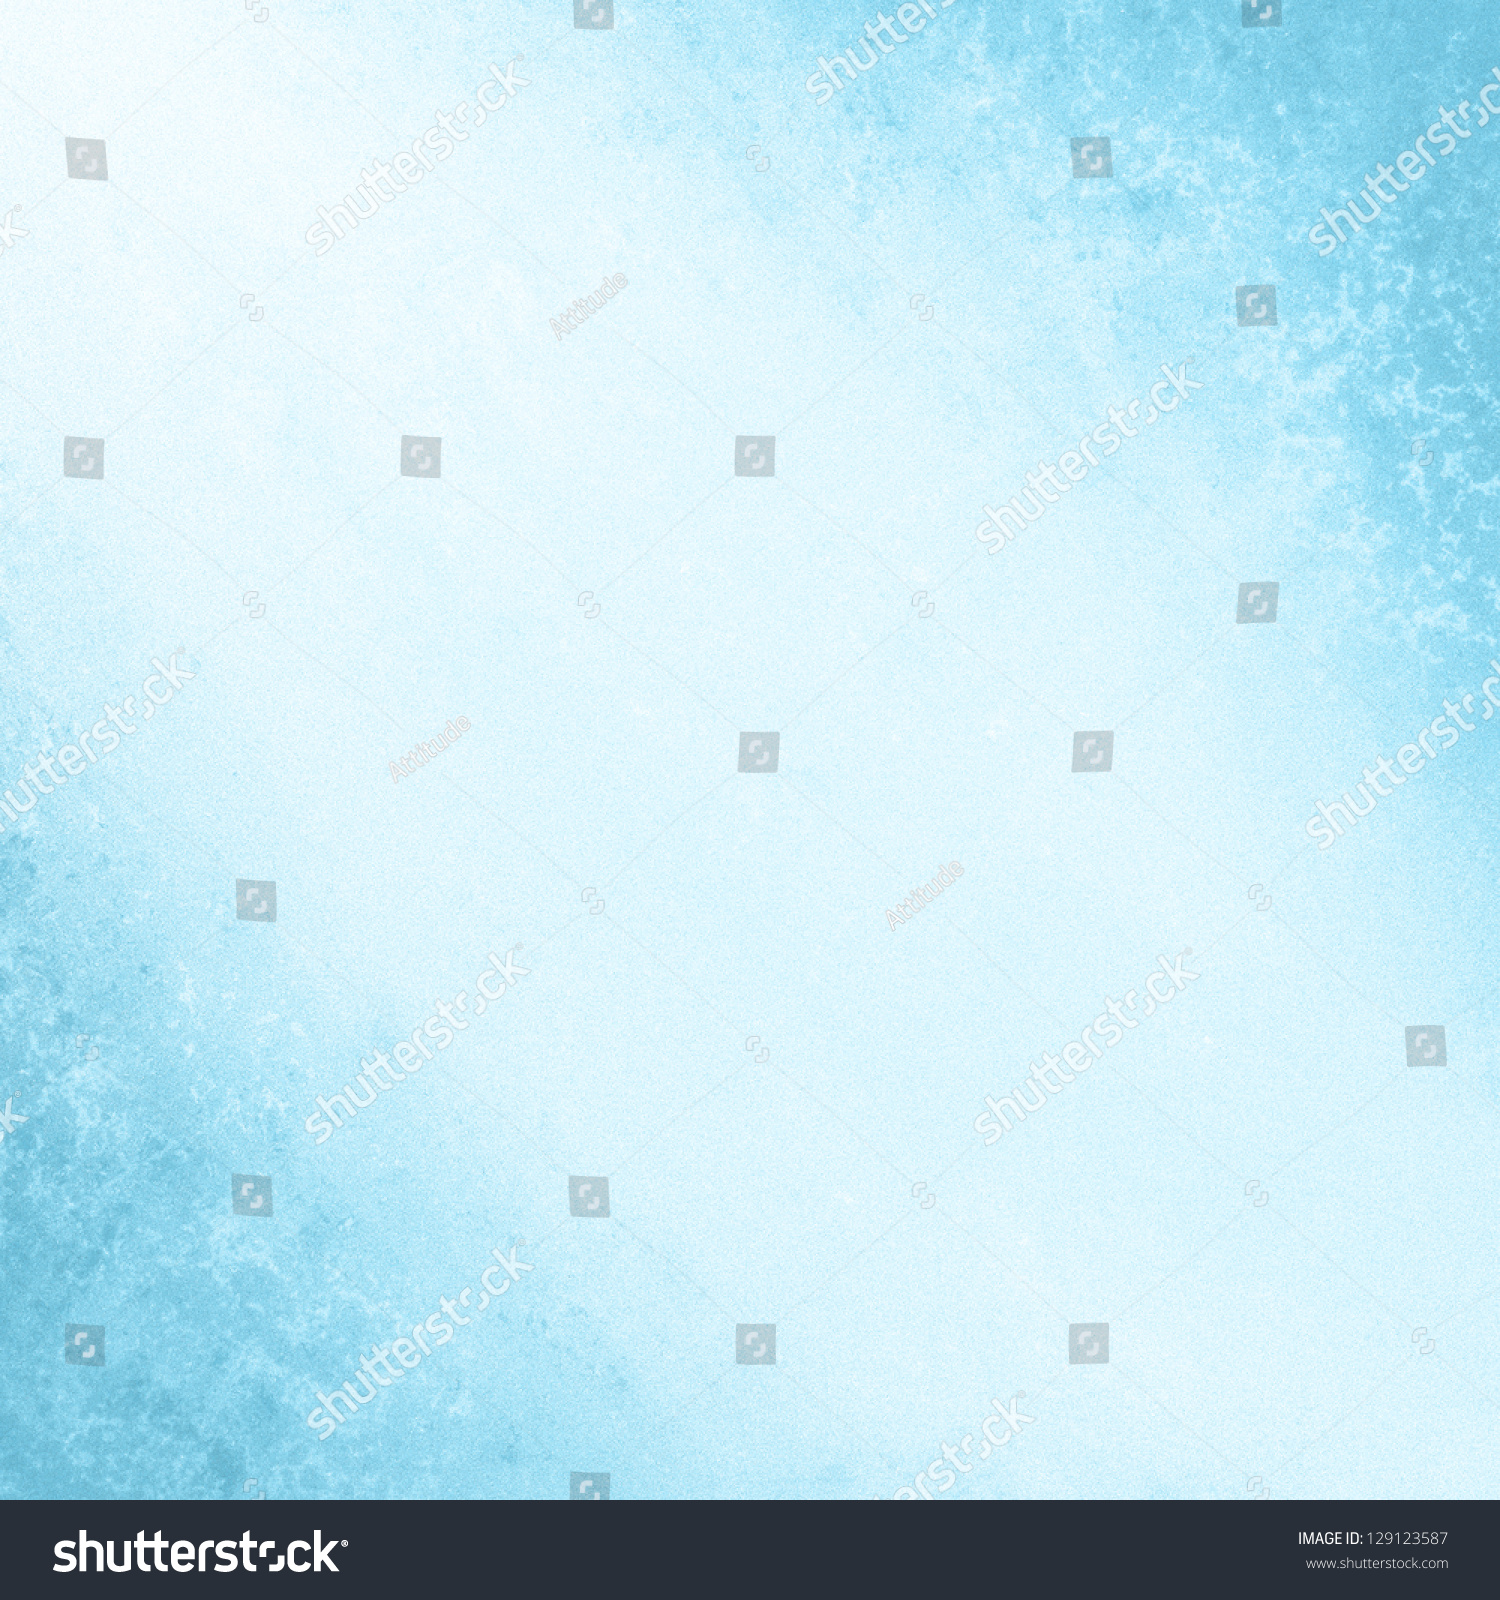 blue background cool spring poster abstract stock